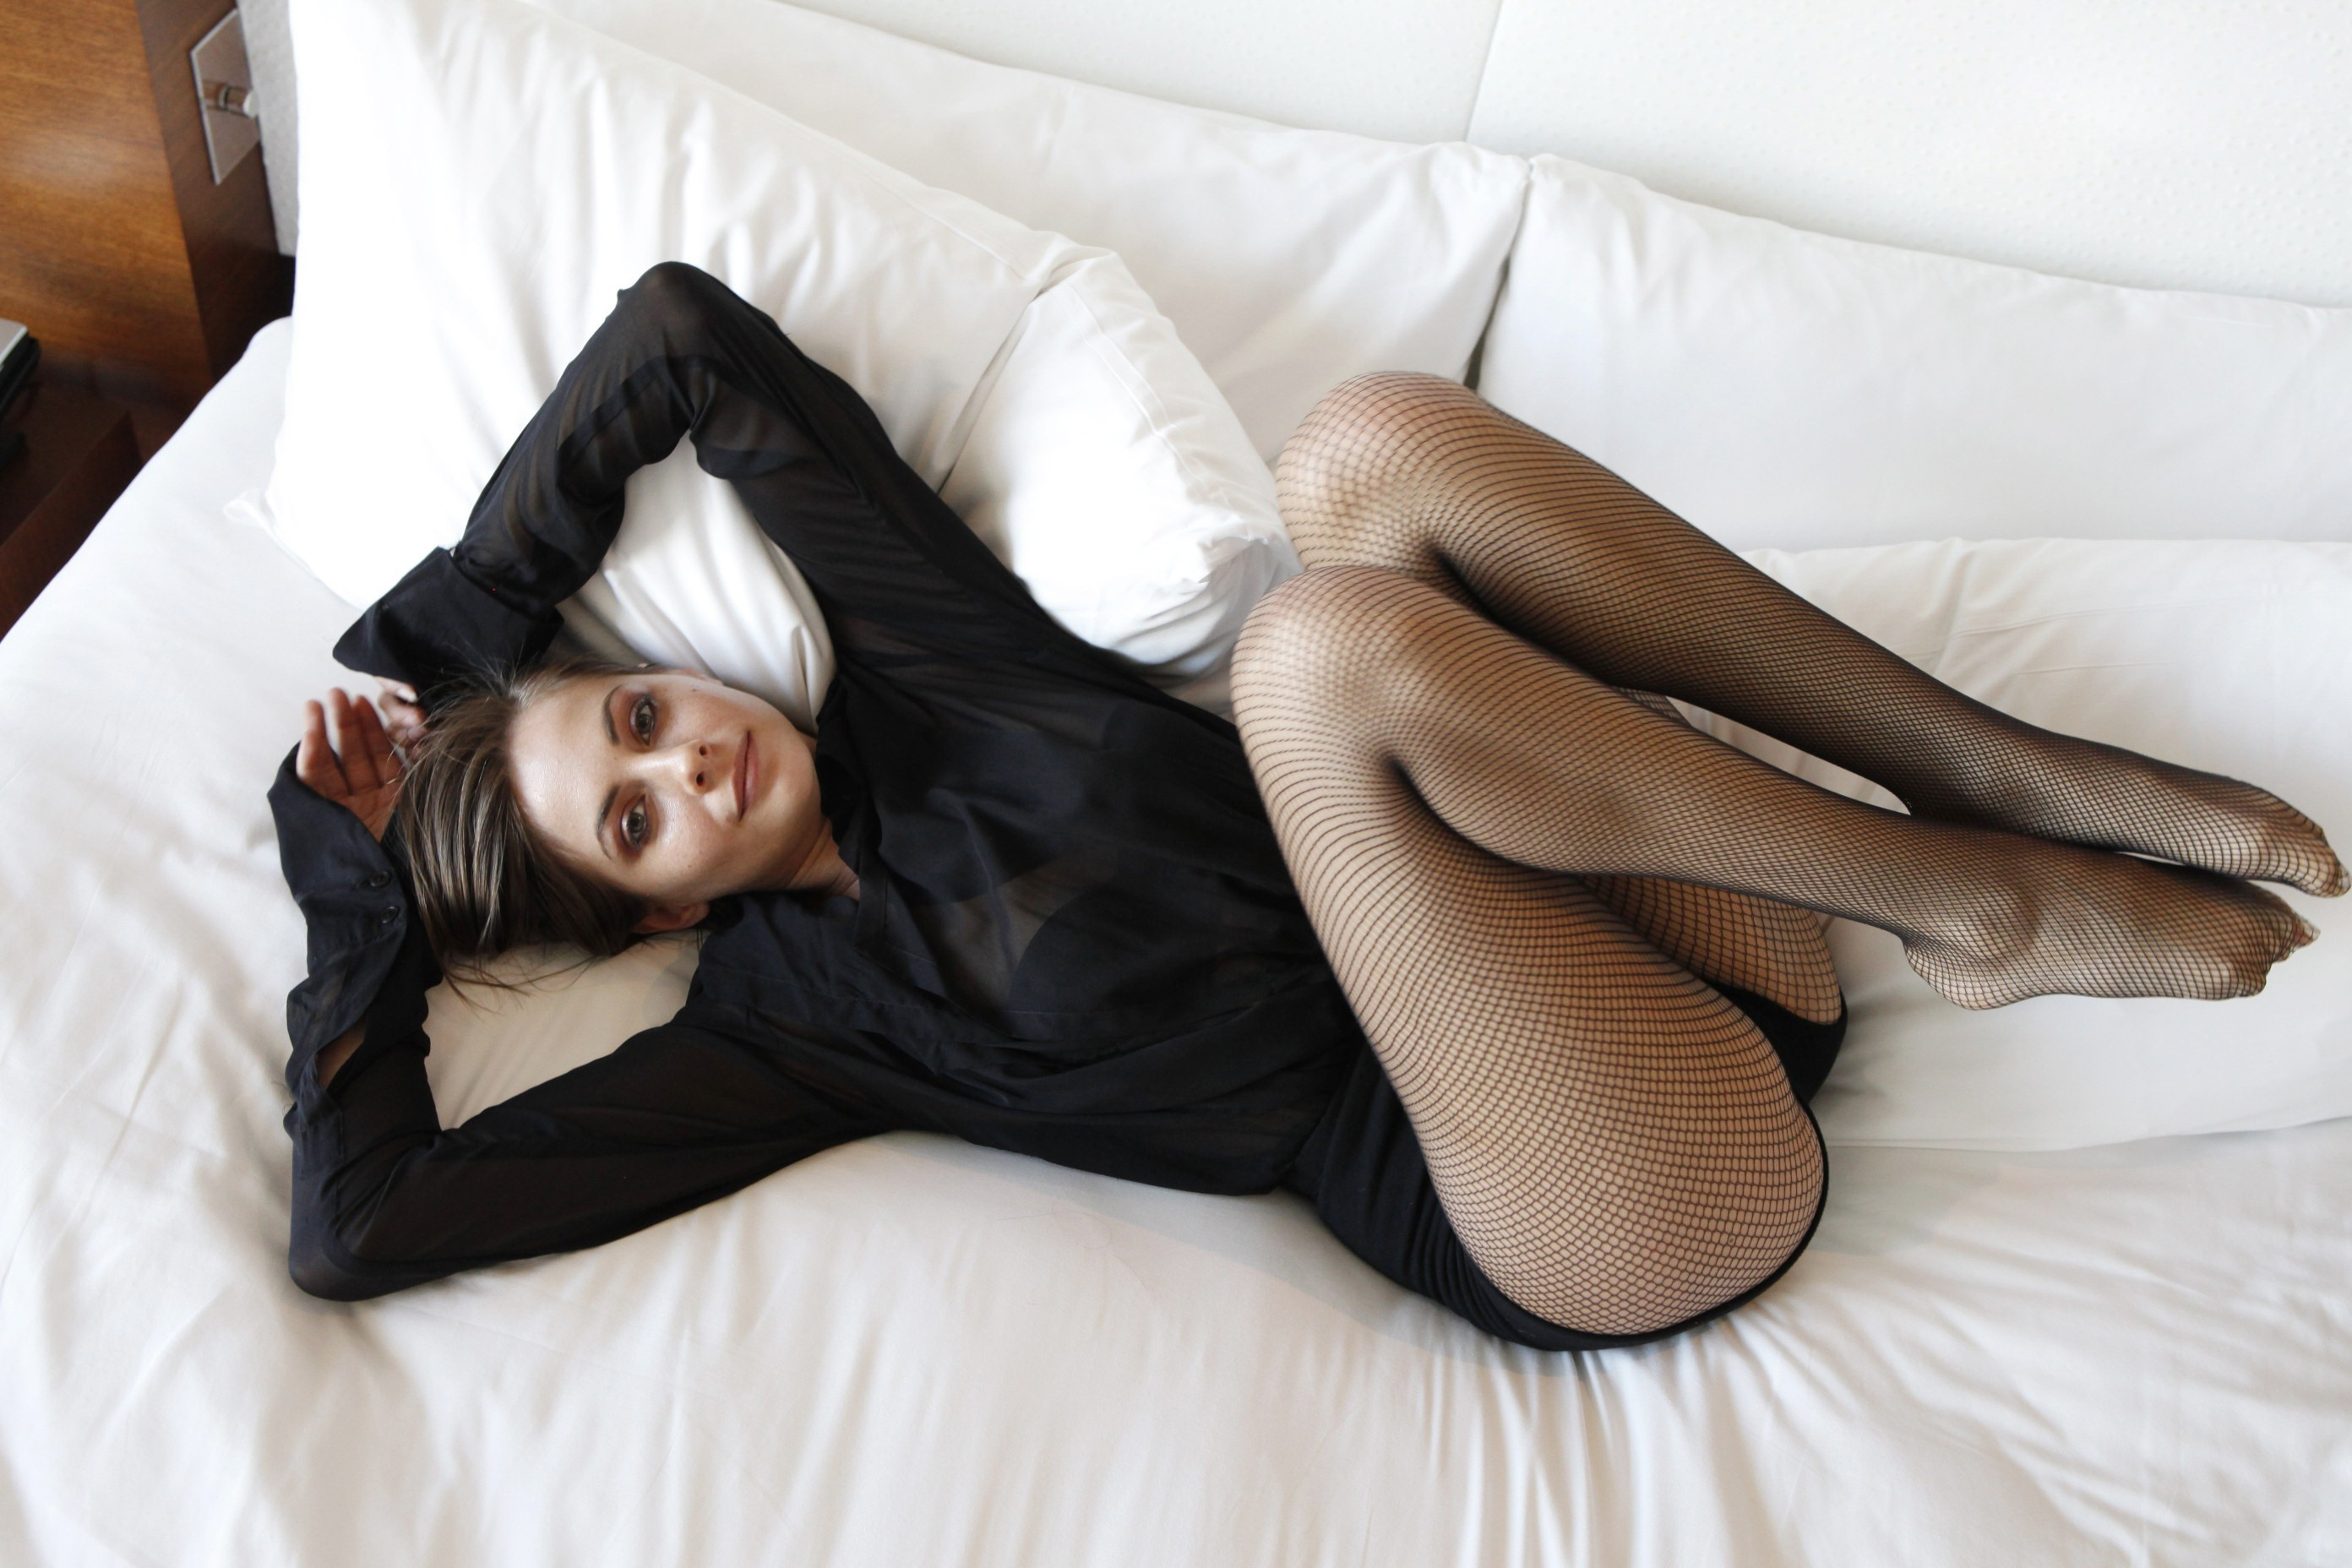 Willa Holland on bed